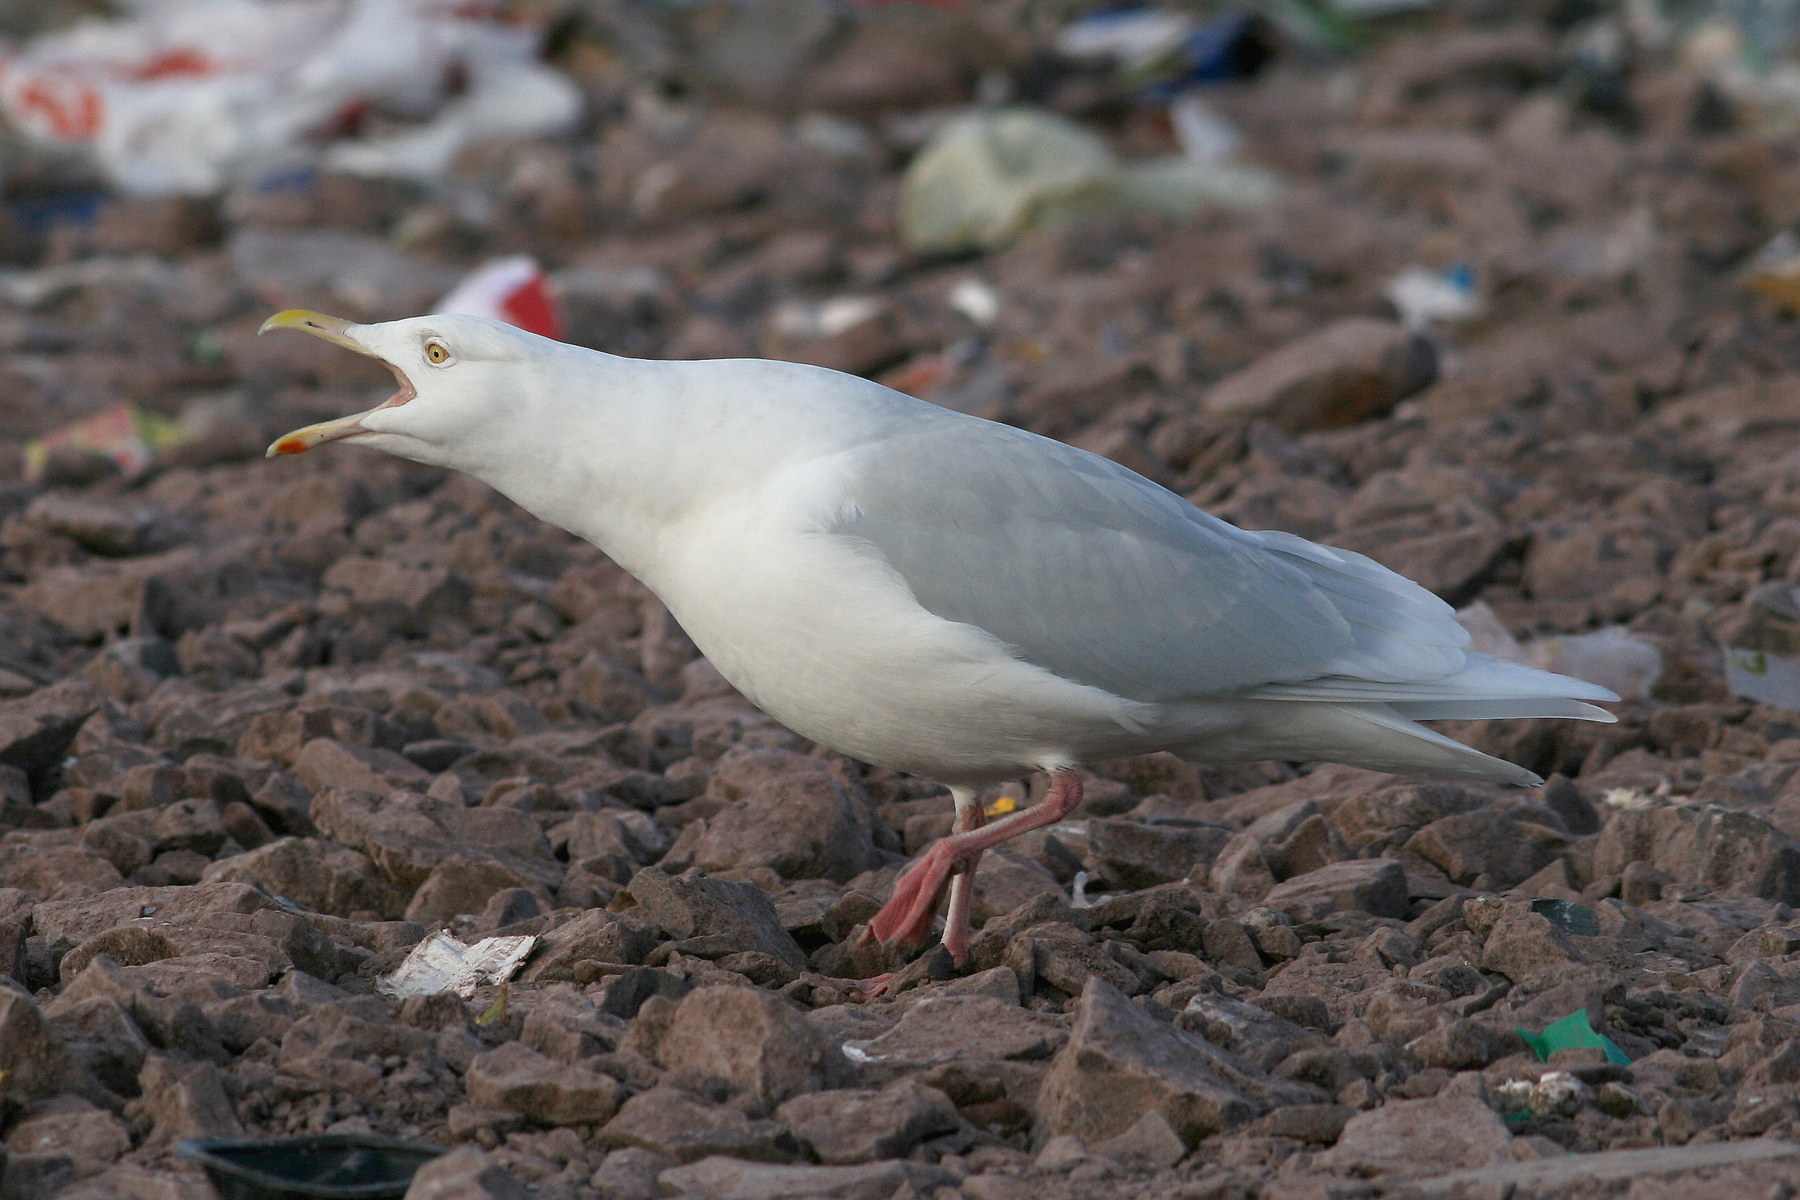 Glaucous Gulls are a sure sign of winter in Newfoundland ... even if the weather says different. This adult was photographed at the dump back in the days when we were able to get in more regularly.